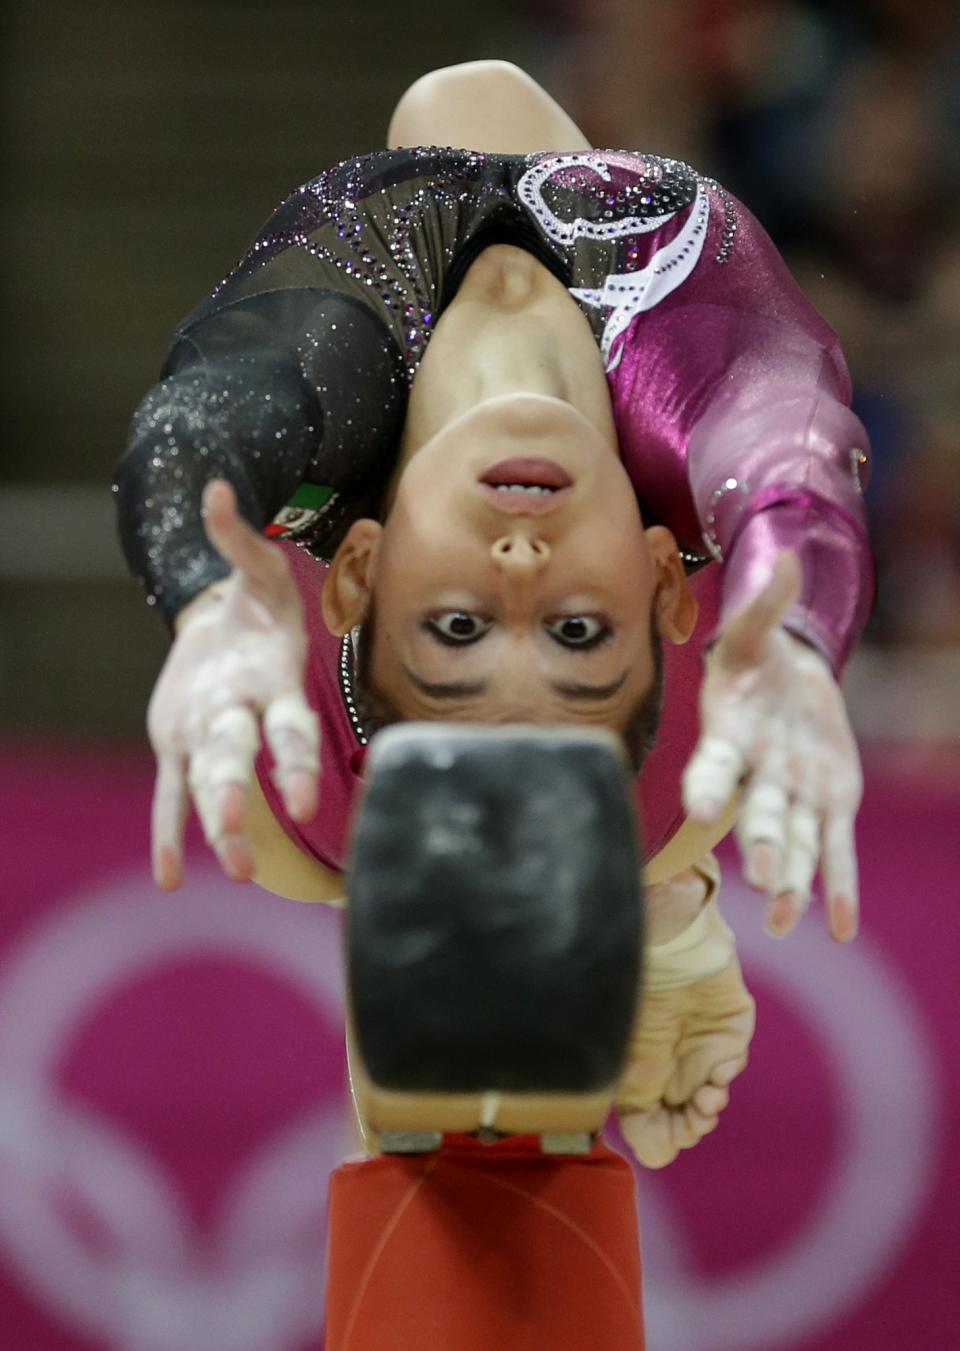 Mexican gymnast Elsa Garcia Rodriguez Blancas performs on the balance beam during the Artistic Gymnastics women's qualification at the 2012 Summer Olympics, Sunday, July 29, 2012, in London. (AP Photo/Gregory Bull)